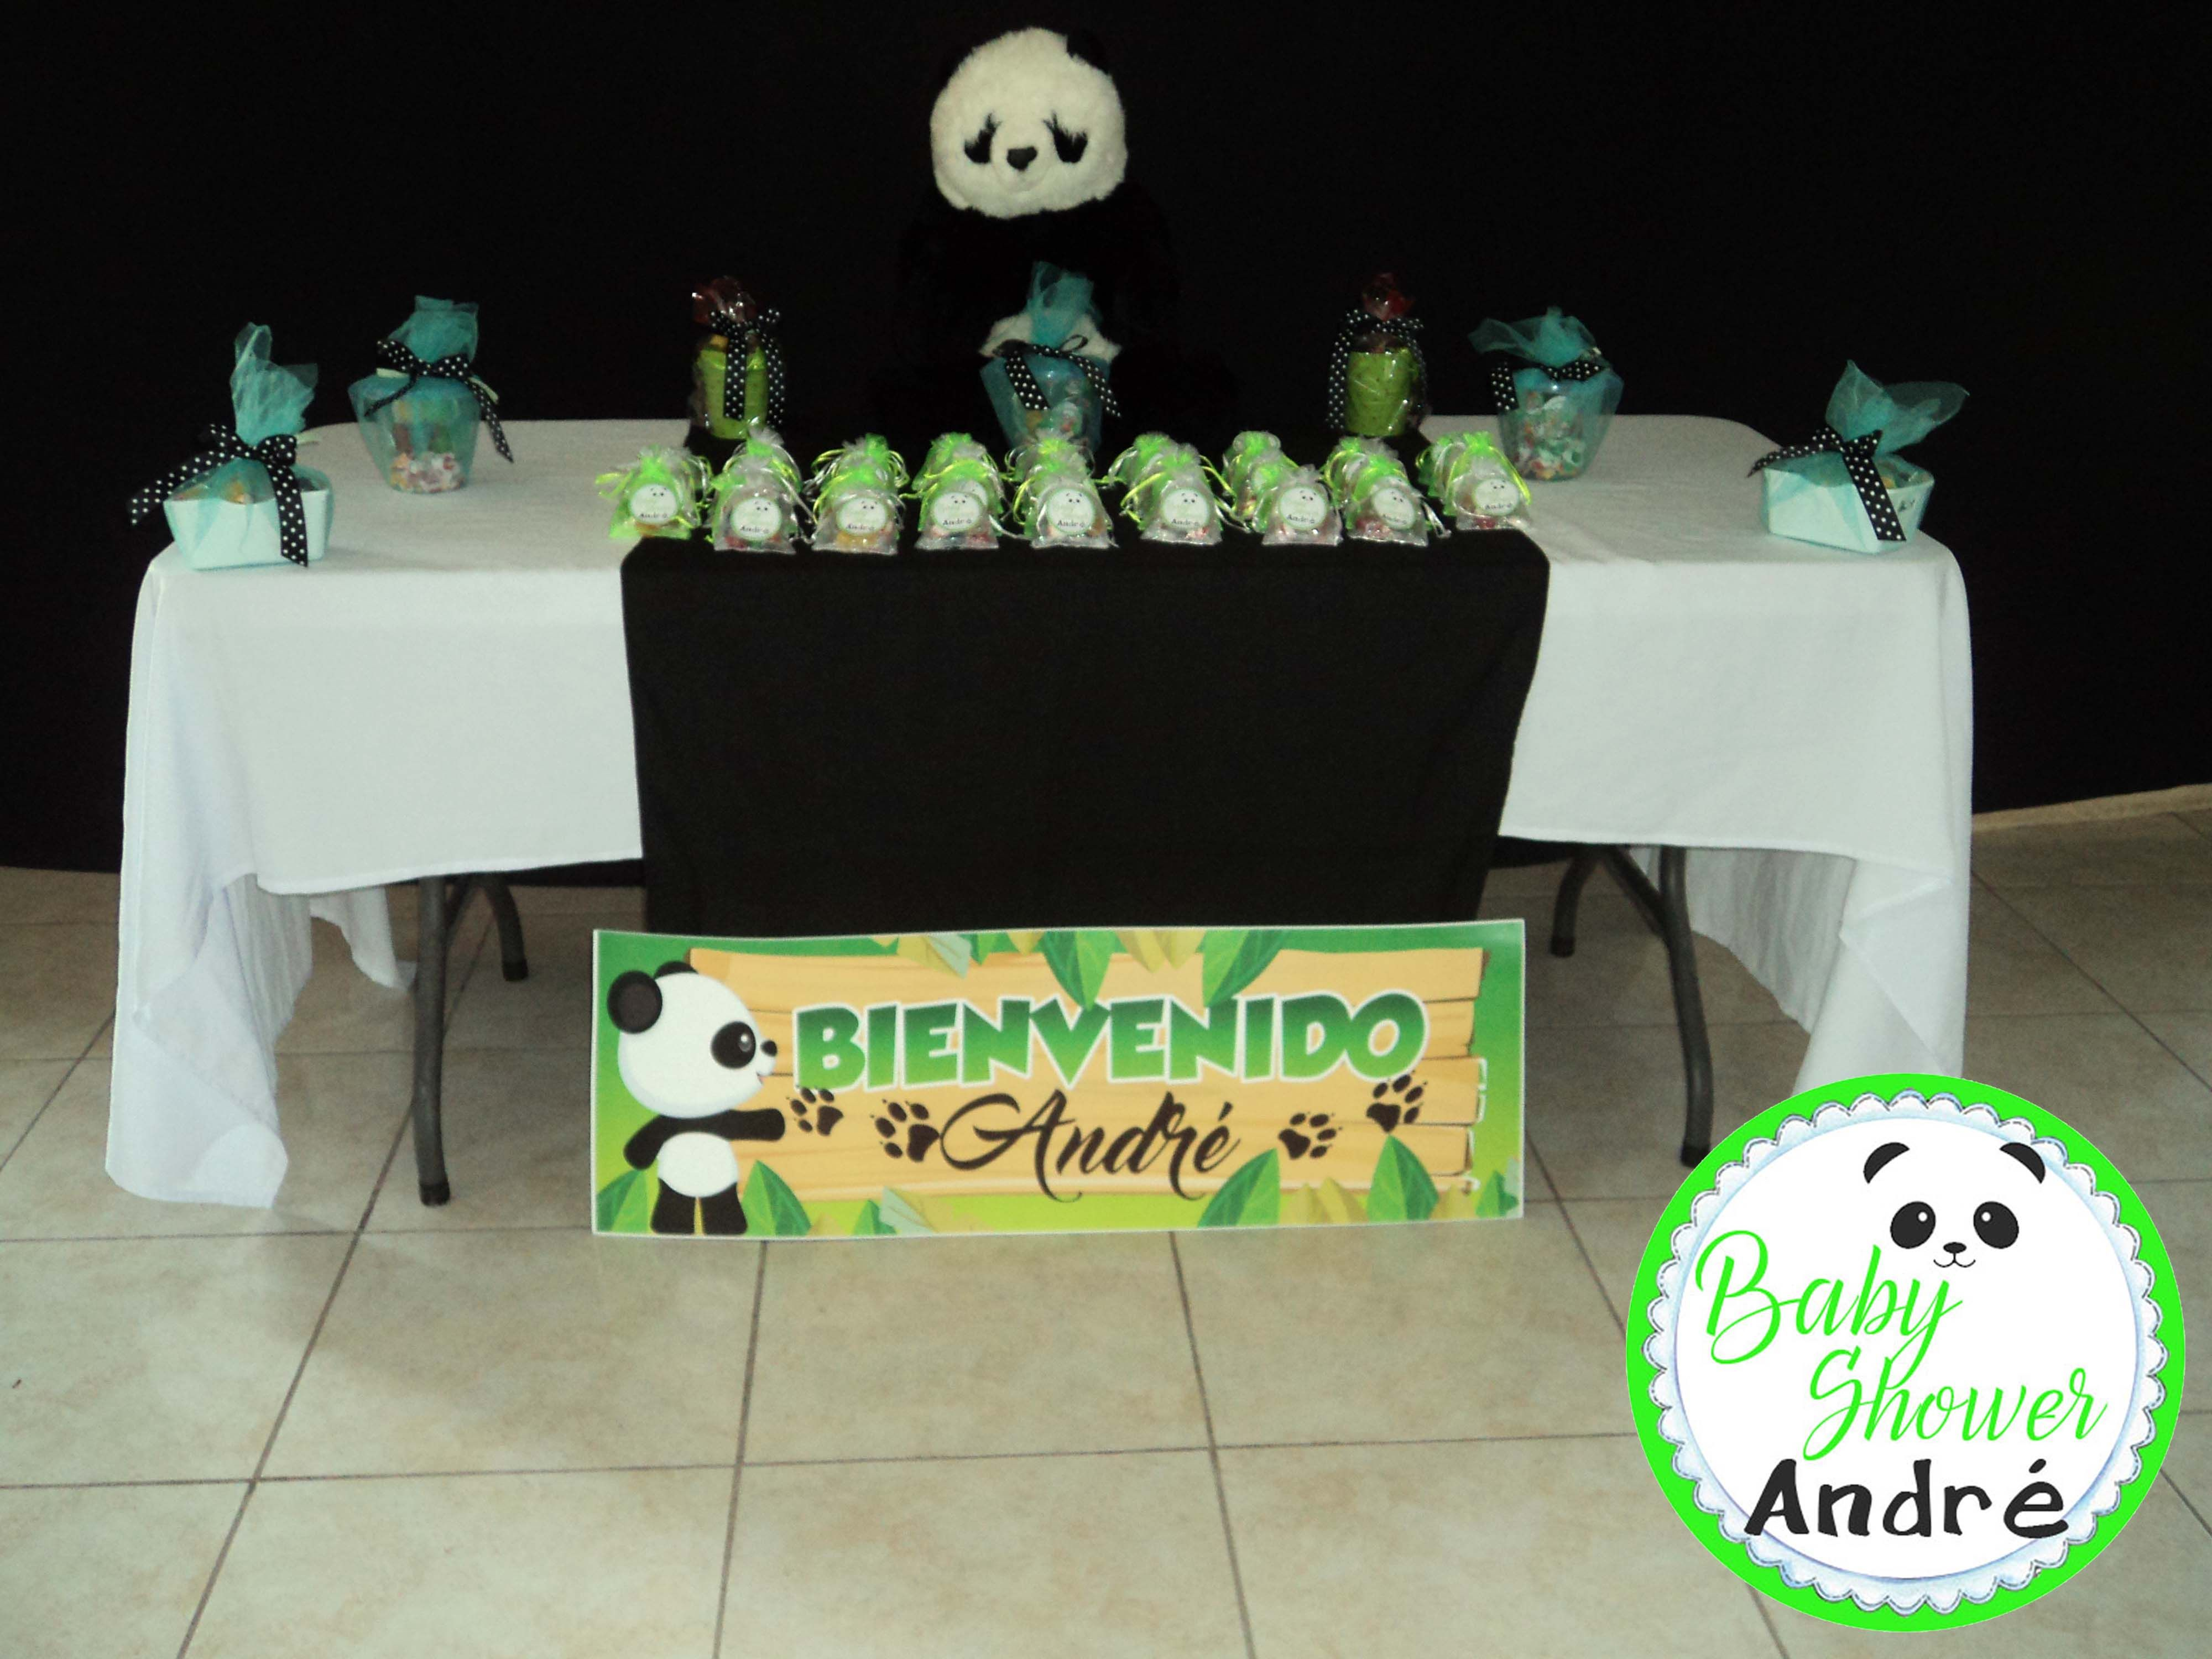 Decoracion panda baby shower baby shower panda - Baby shower decoracion ...